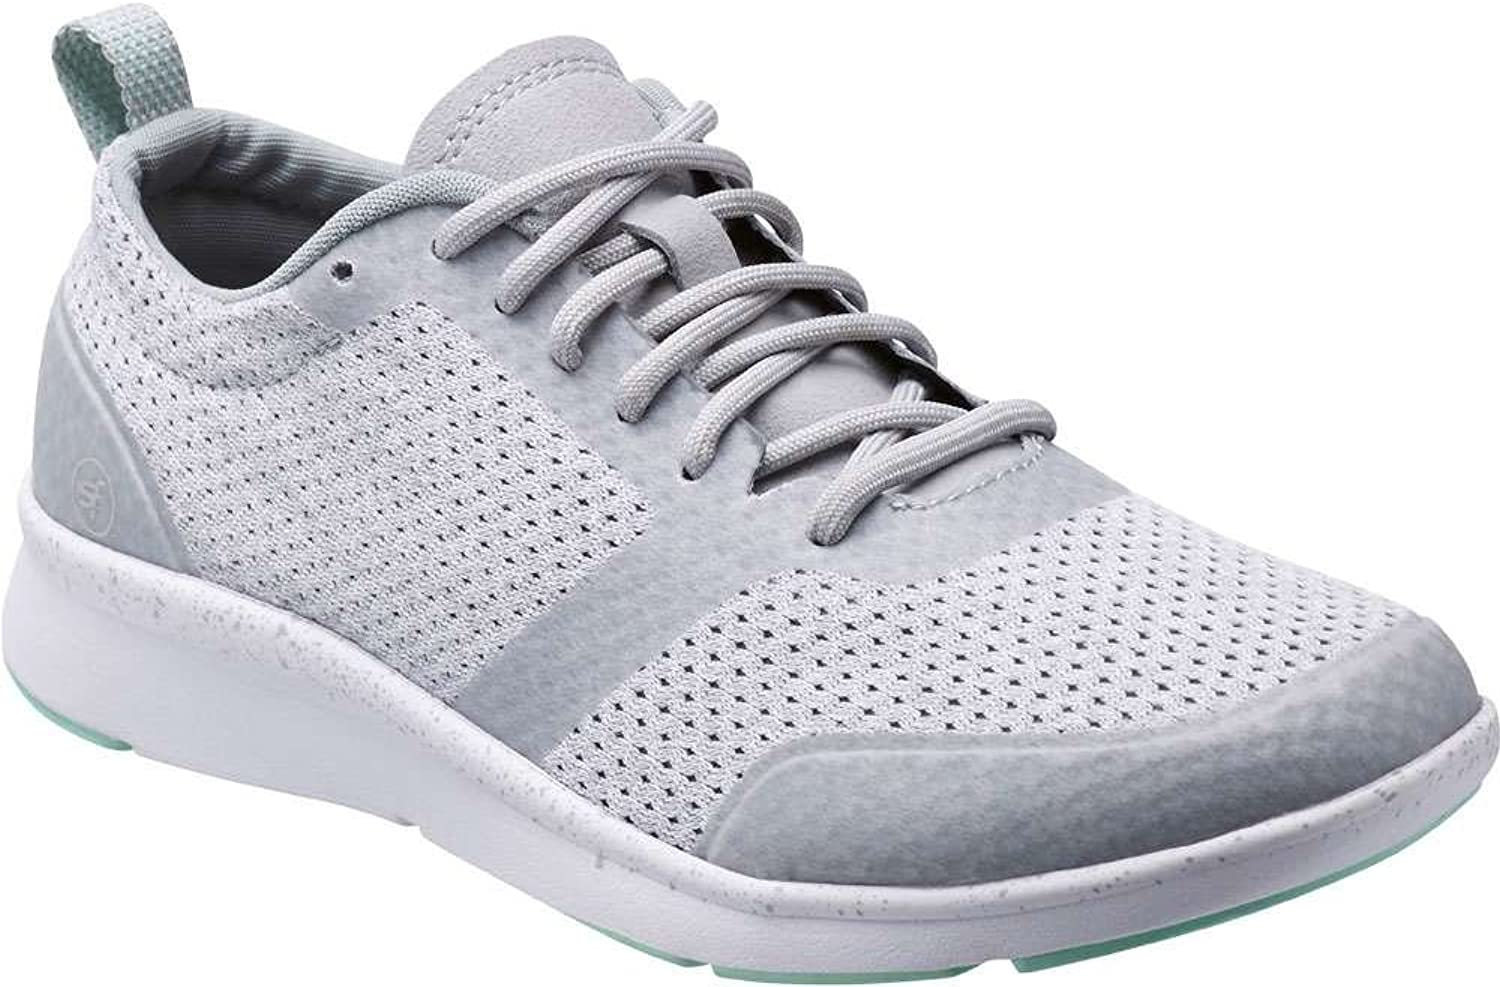 Superfeet Linden Women's Crafted Sport shoes